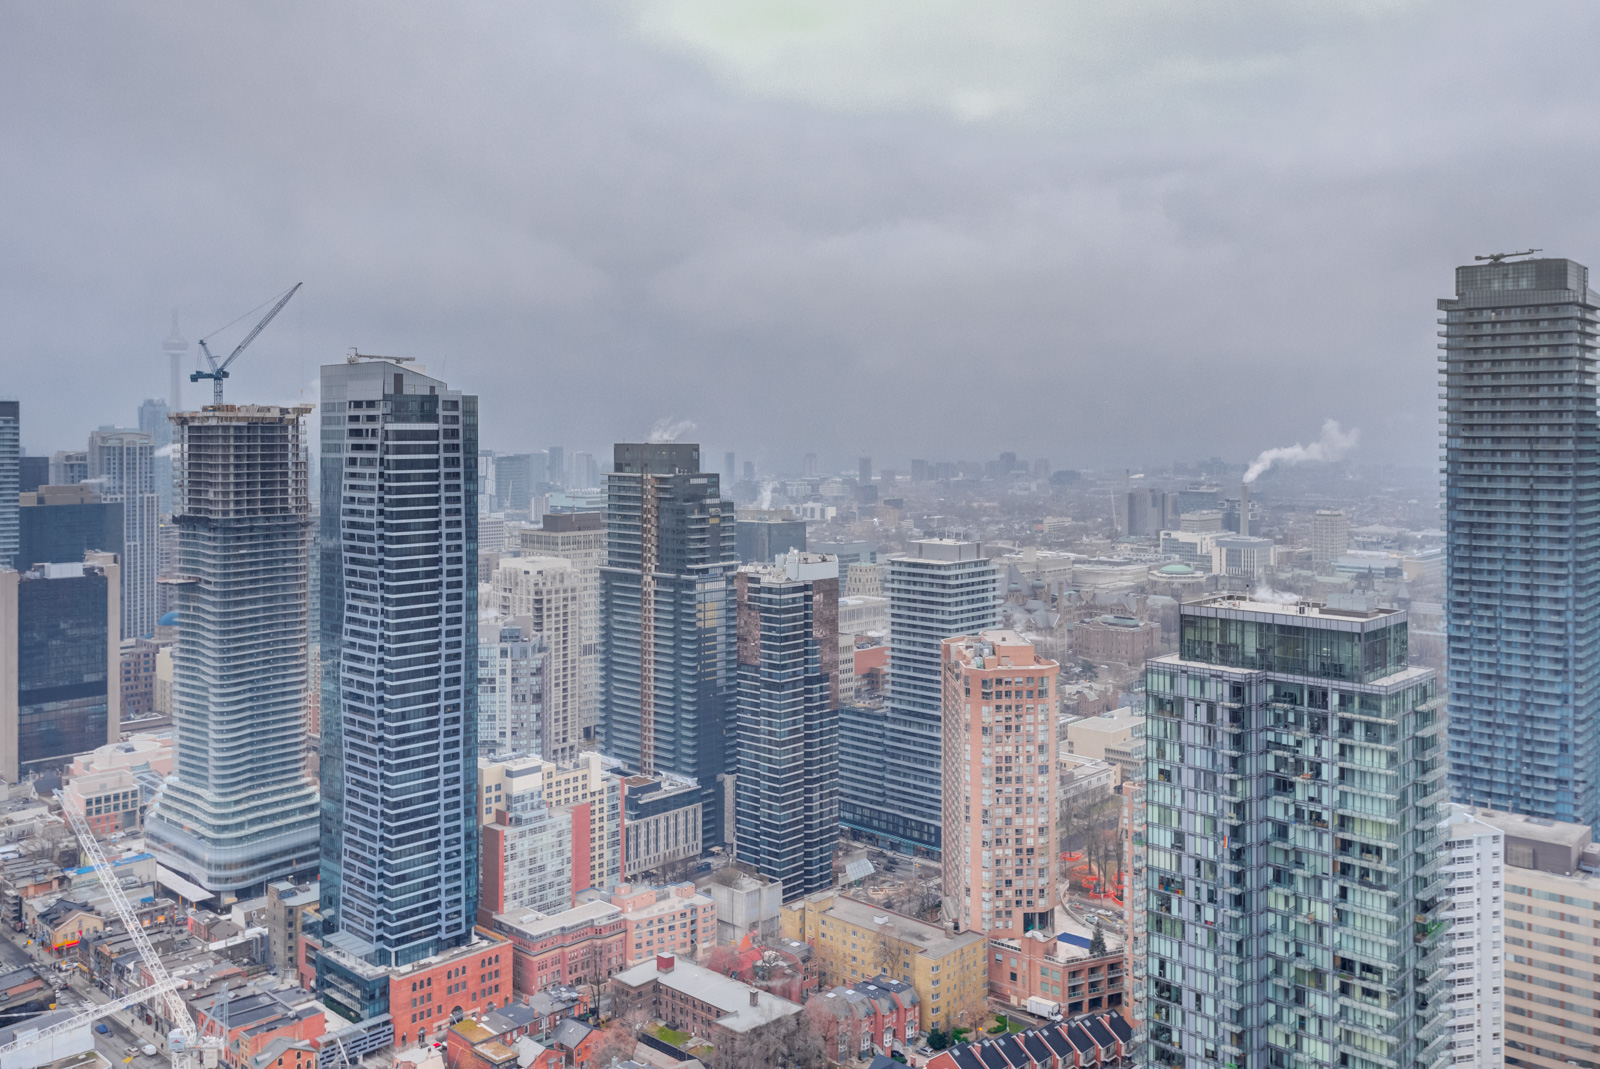 View of Yonge and Bloor from balcony of 33 Charles